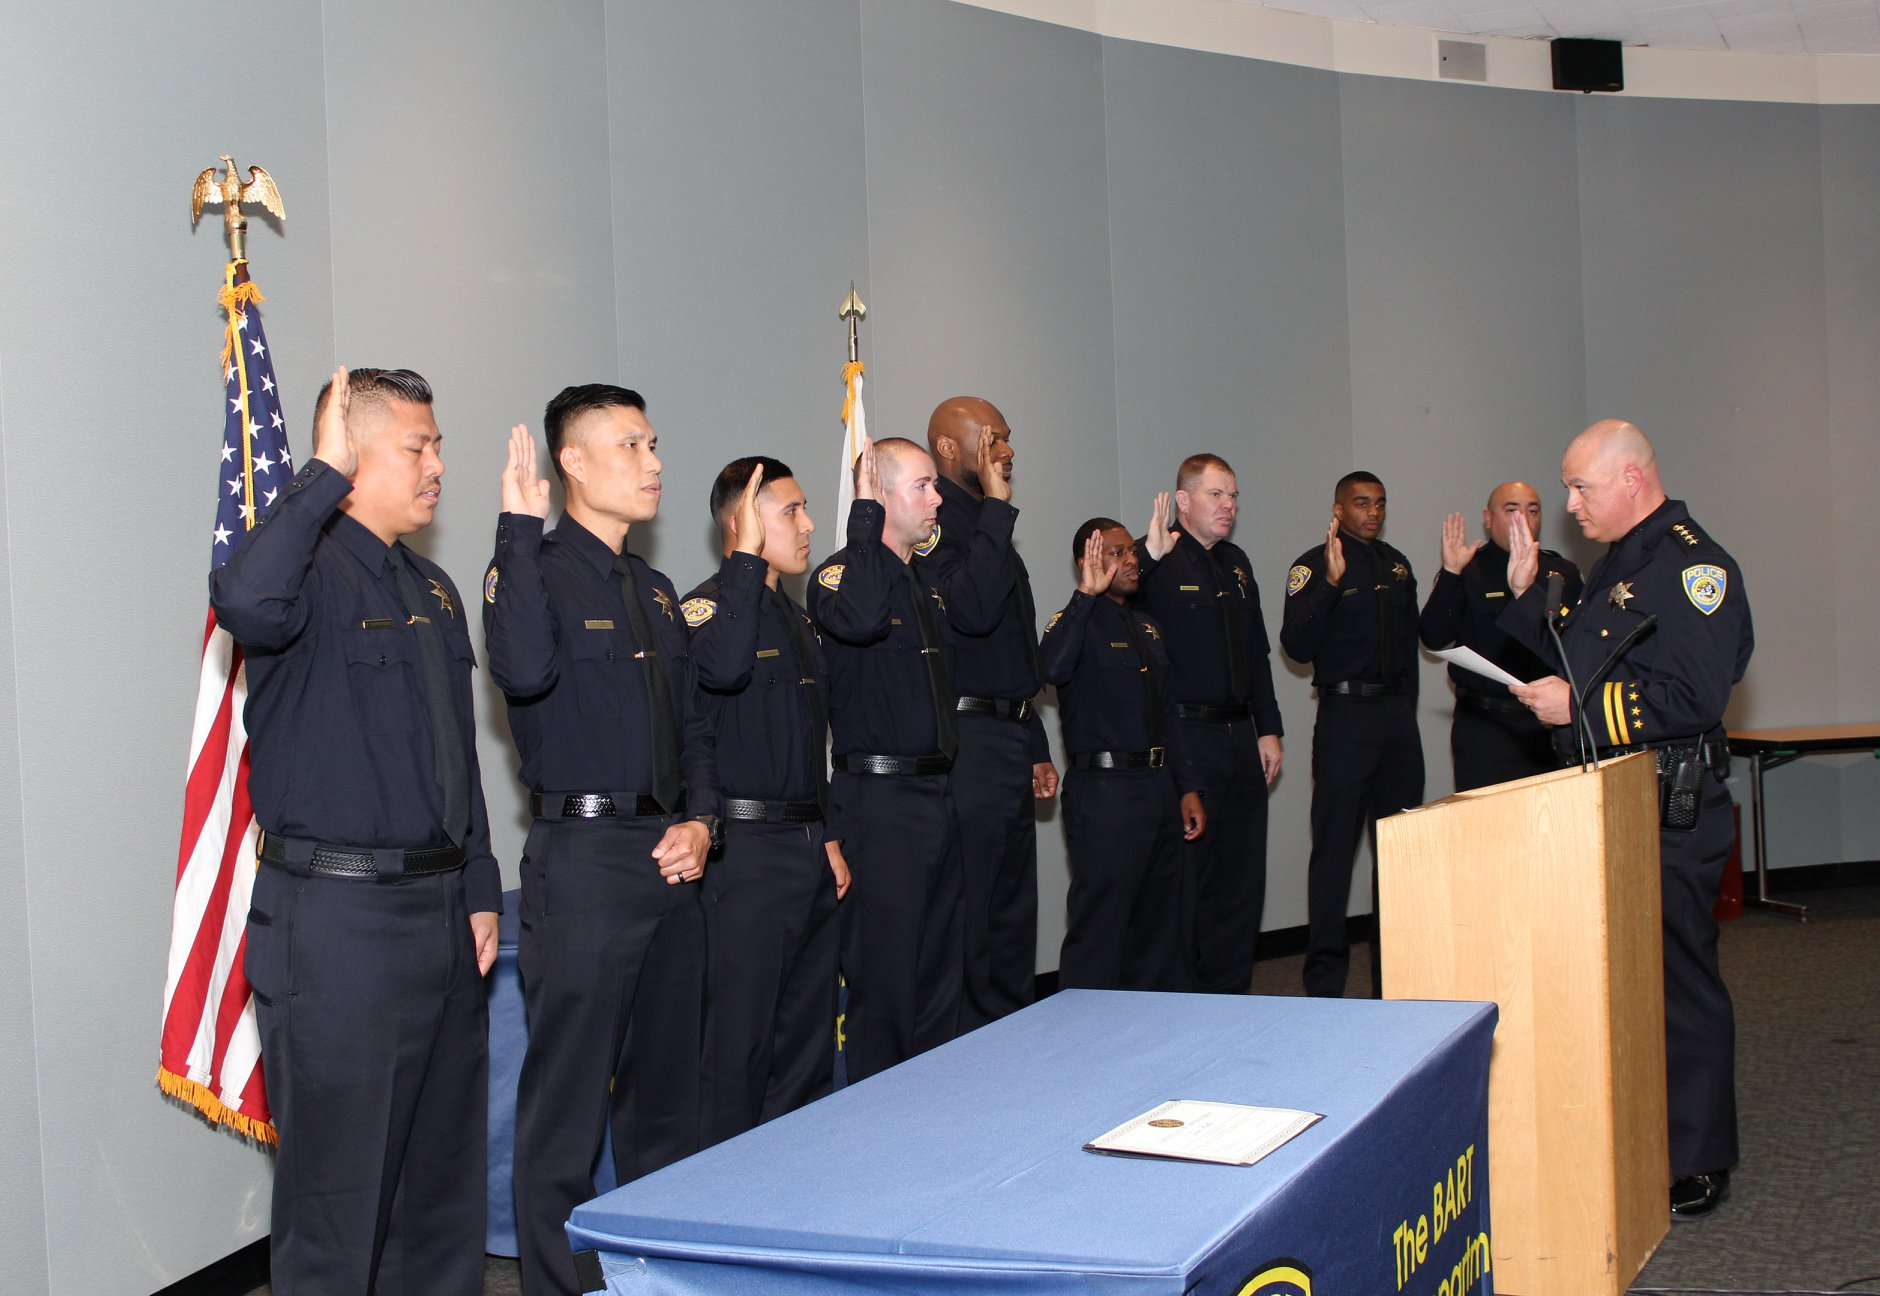 Interim Chief Ed Alvarez swears in police officers